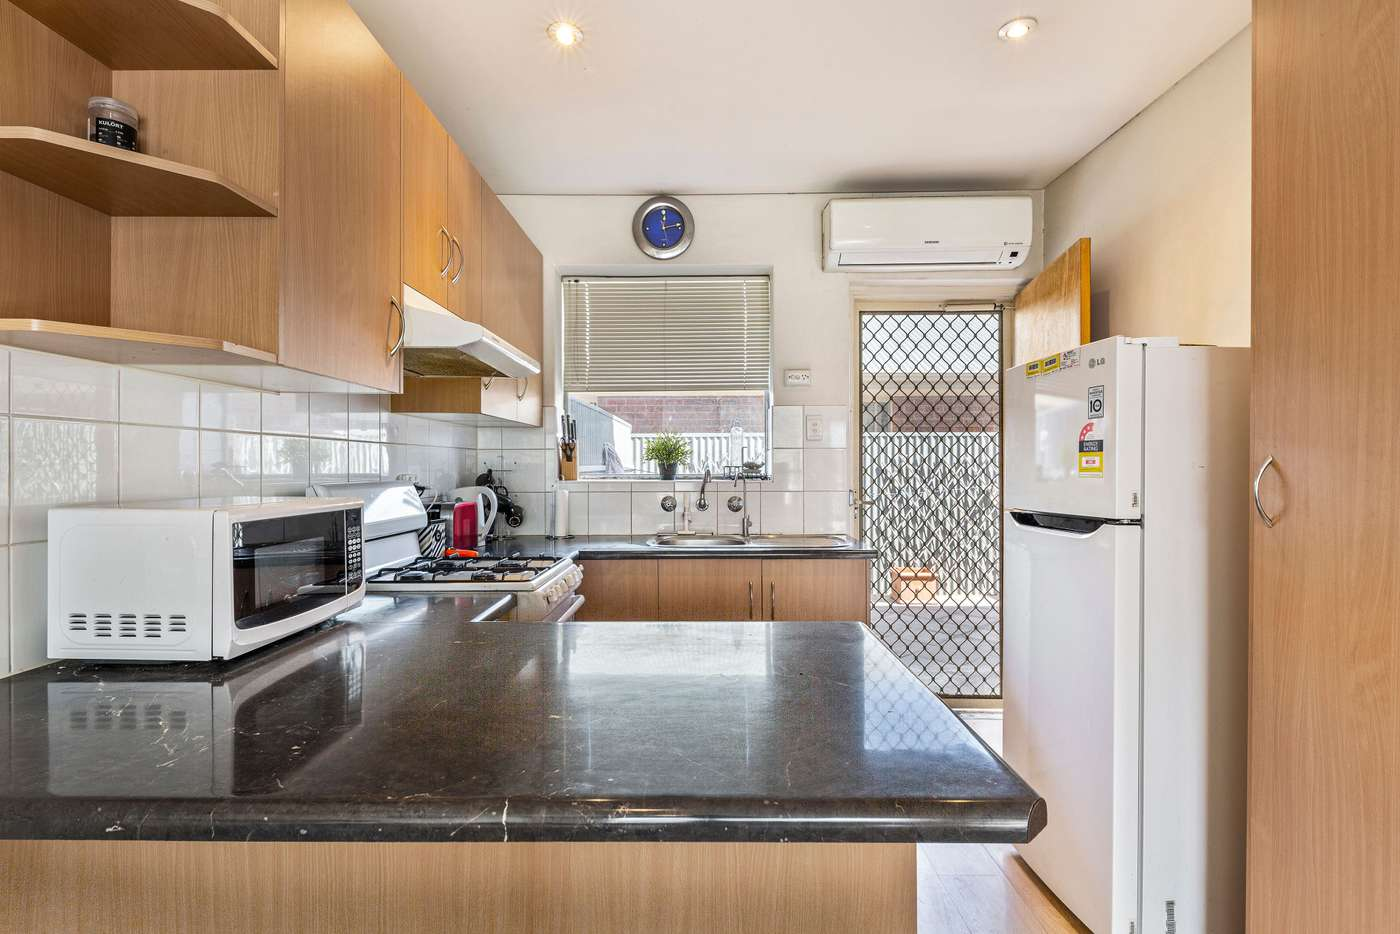 Sixth view of Homely house listing, 2/34 Norma Street, Mile End SA 5031